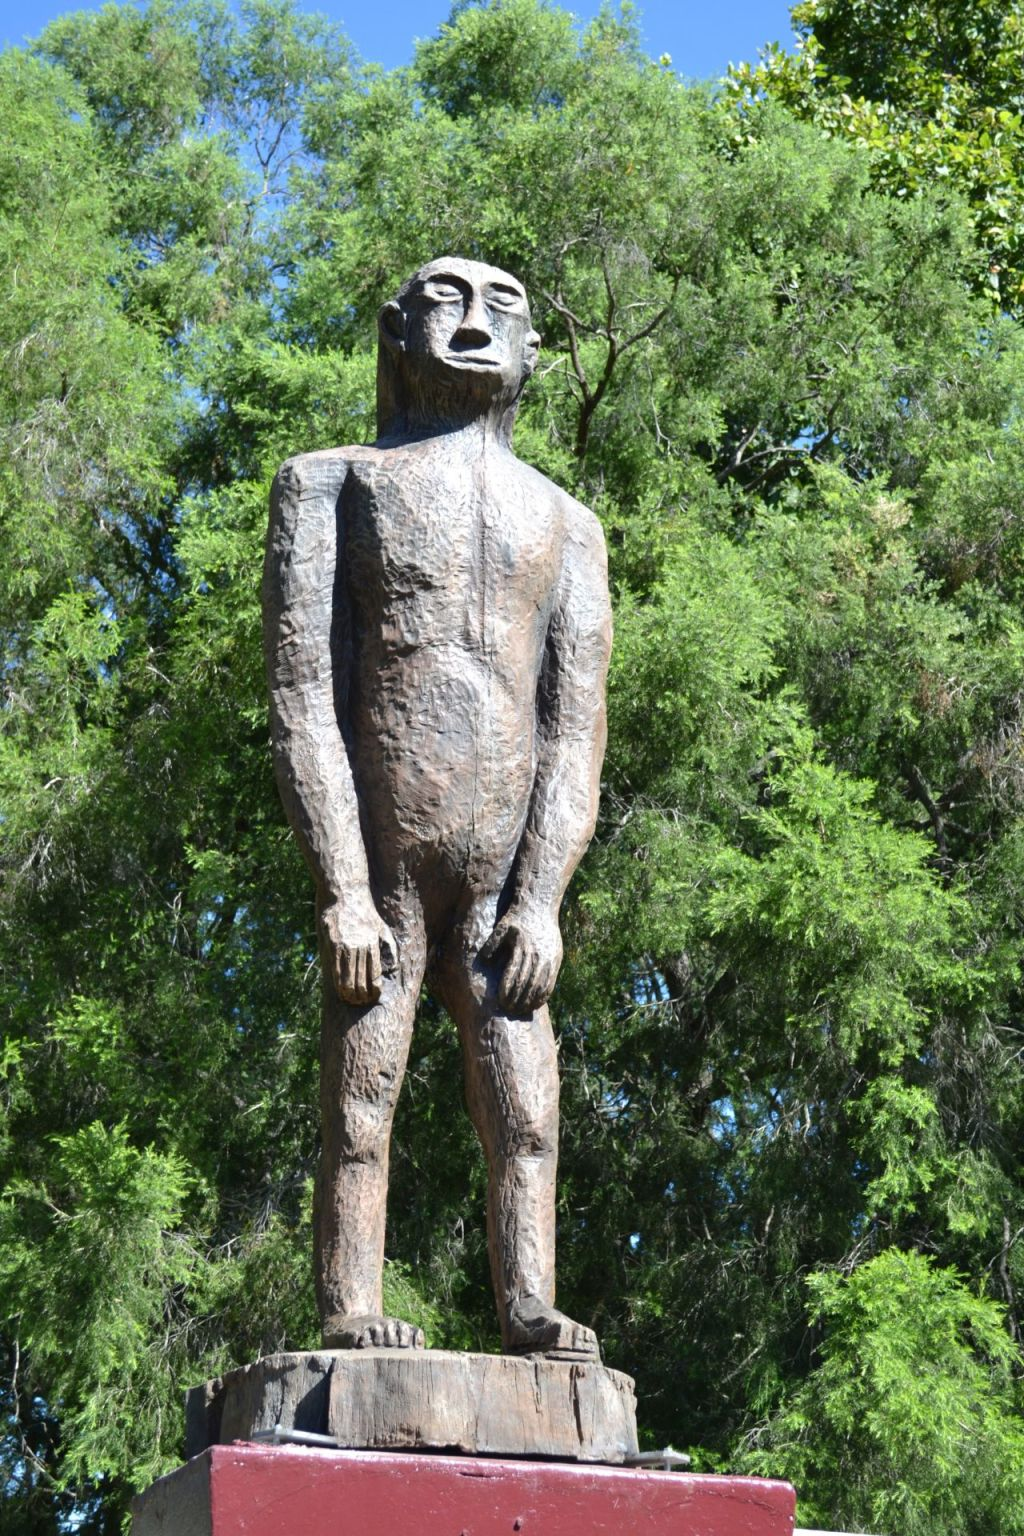 The Kilcoy Yowie statue has recently been replaced. The old wooden creature was switched for a more durable fibreglass version.